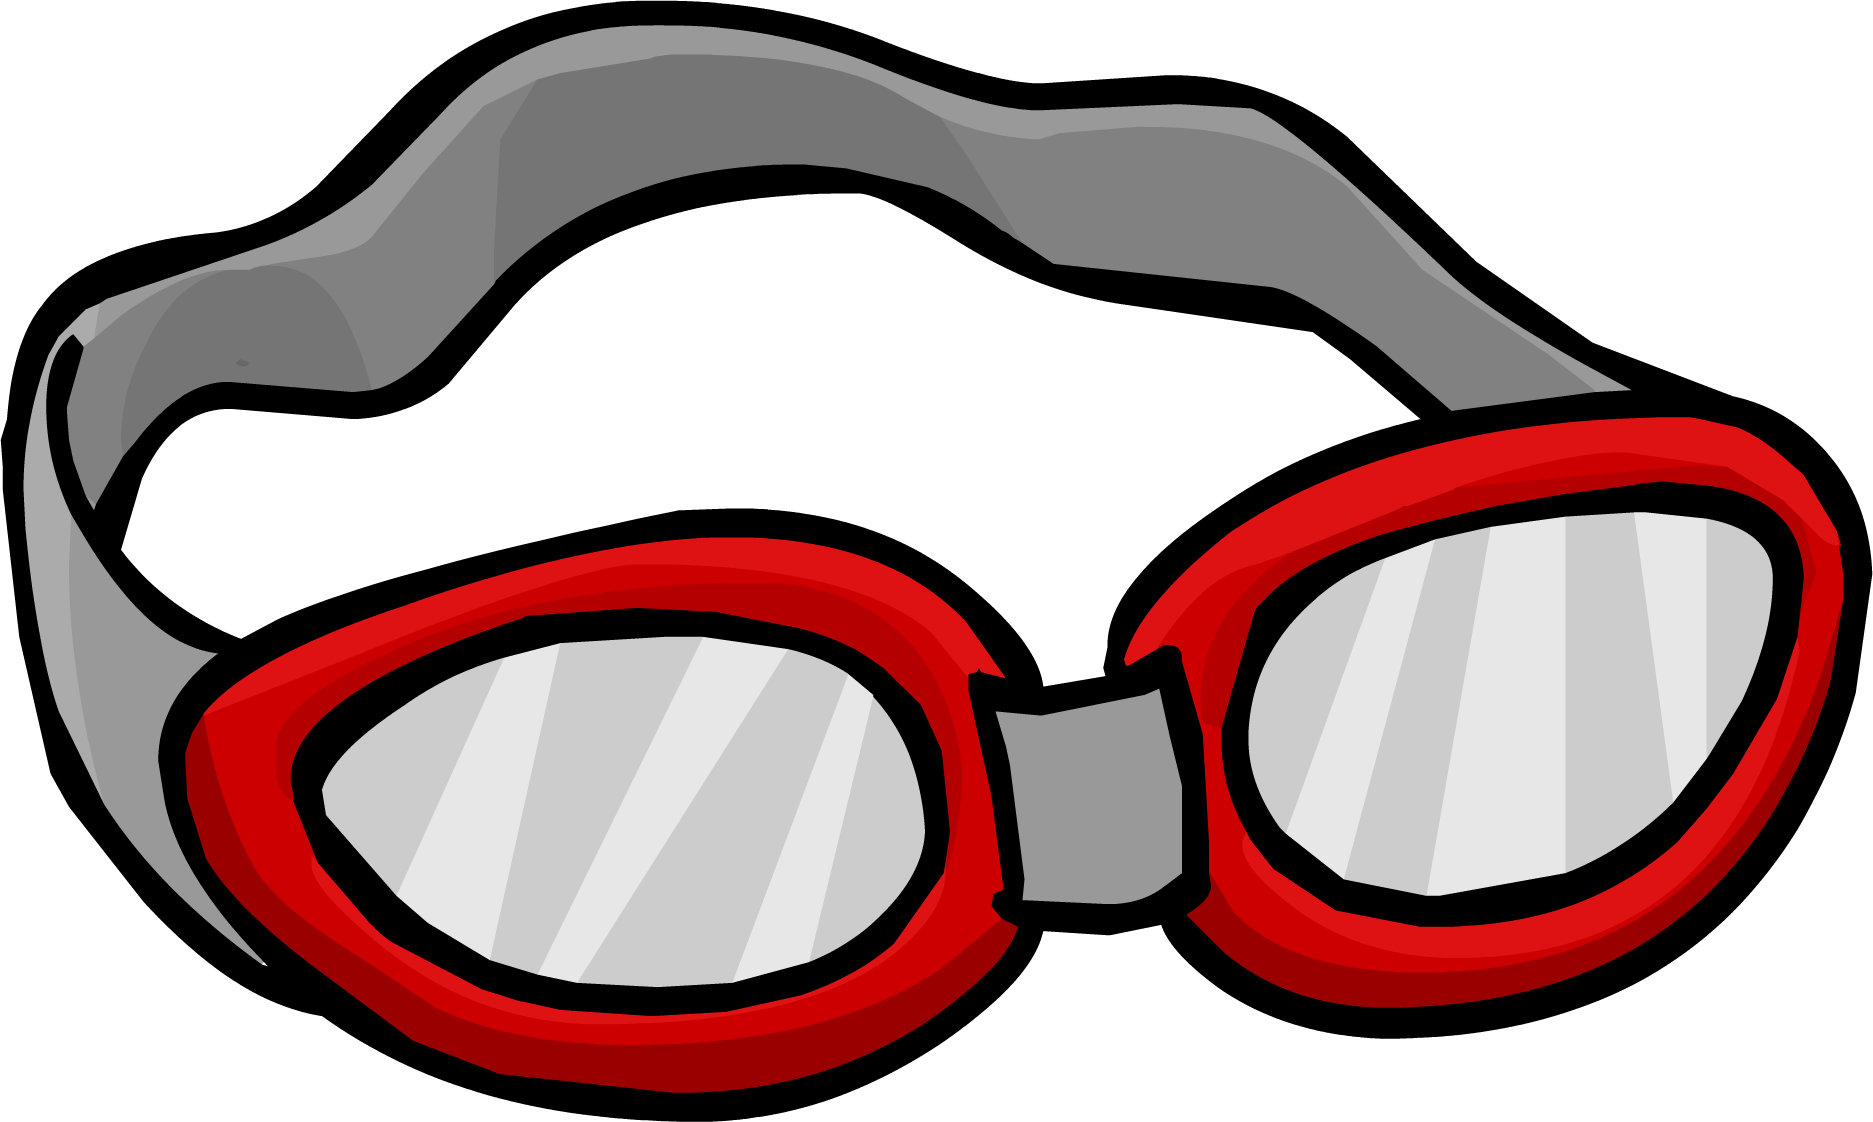 Sunglasses clipart goggle. Swim goggles club penguin